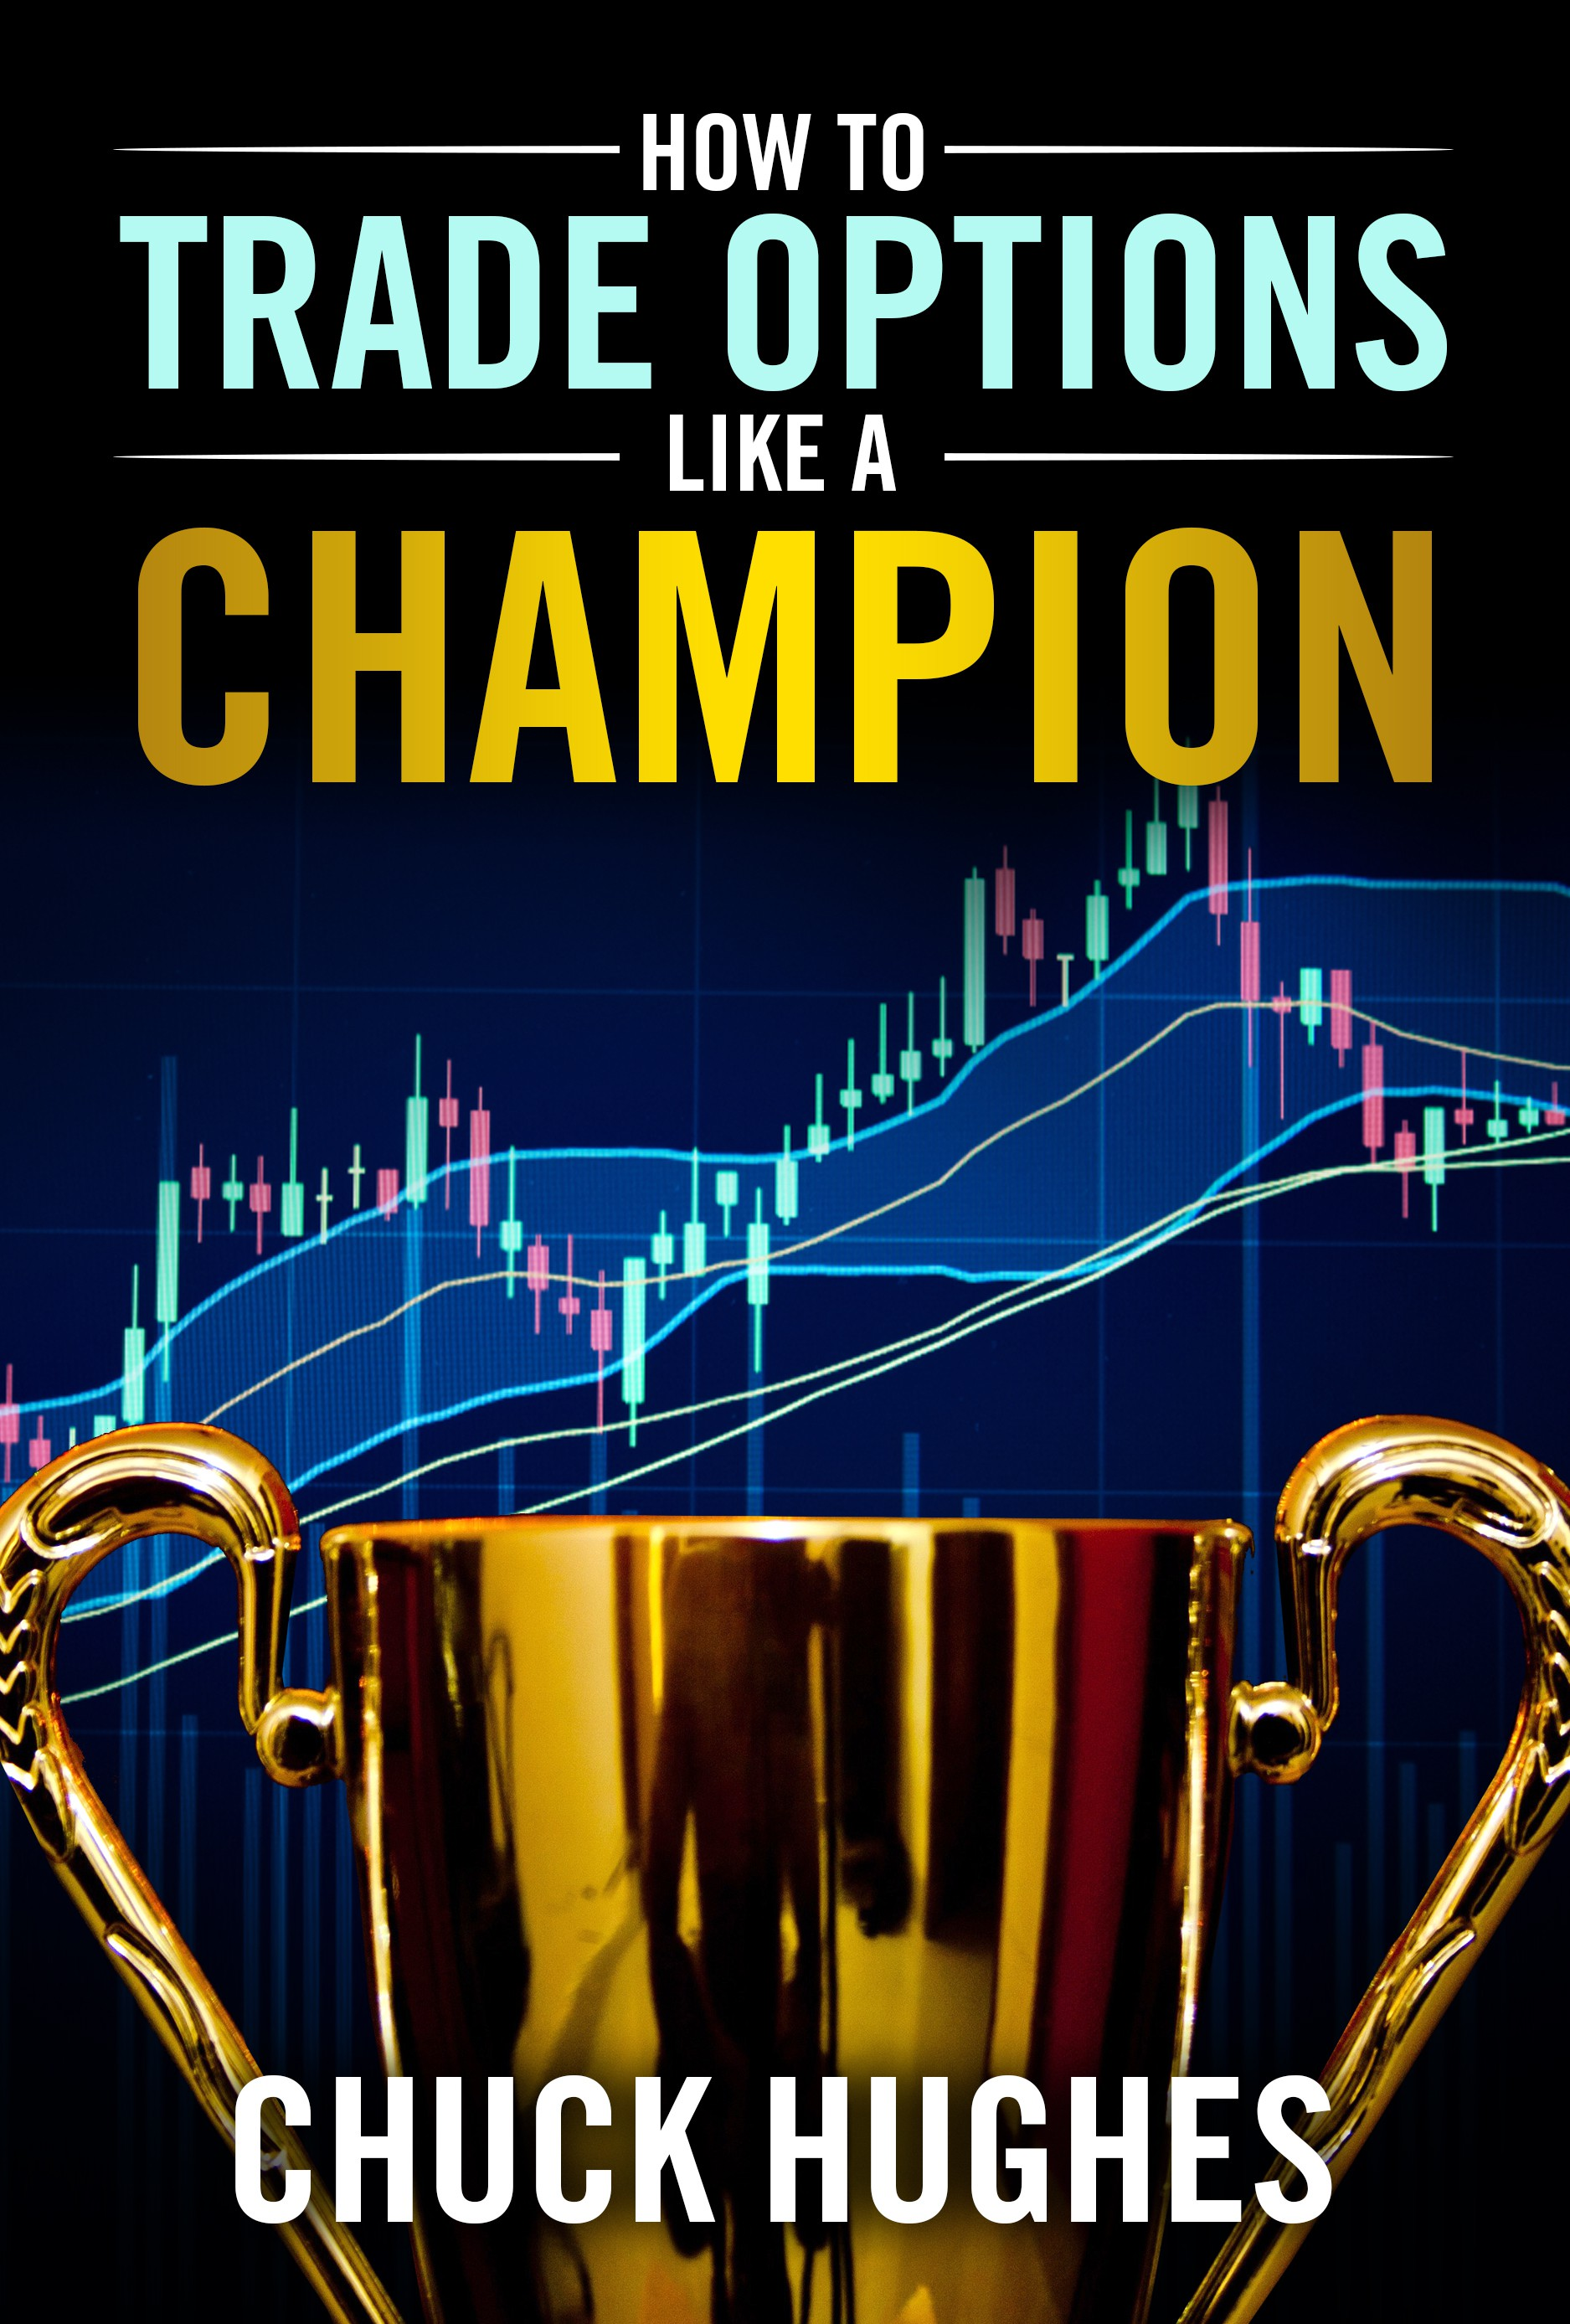 Ebook Cover Design for Investing and Trading